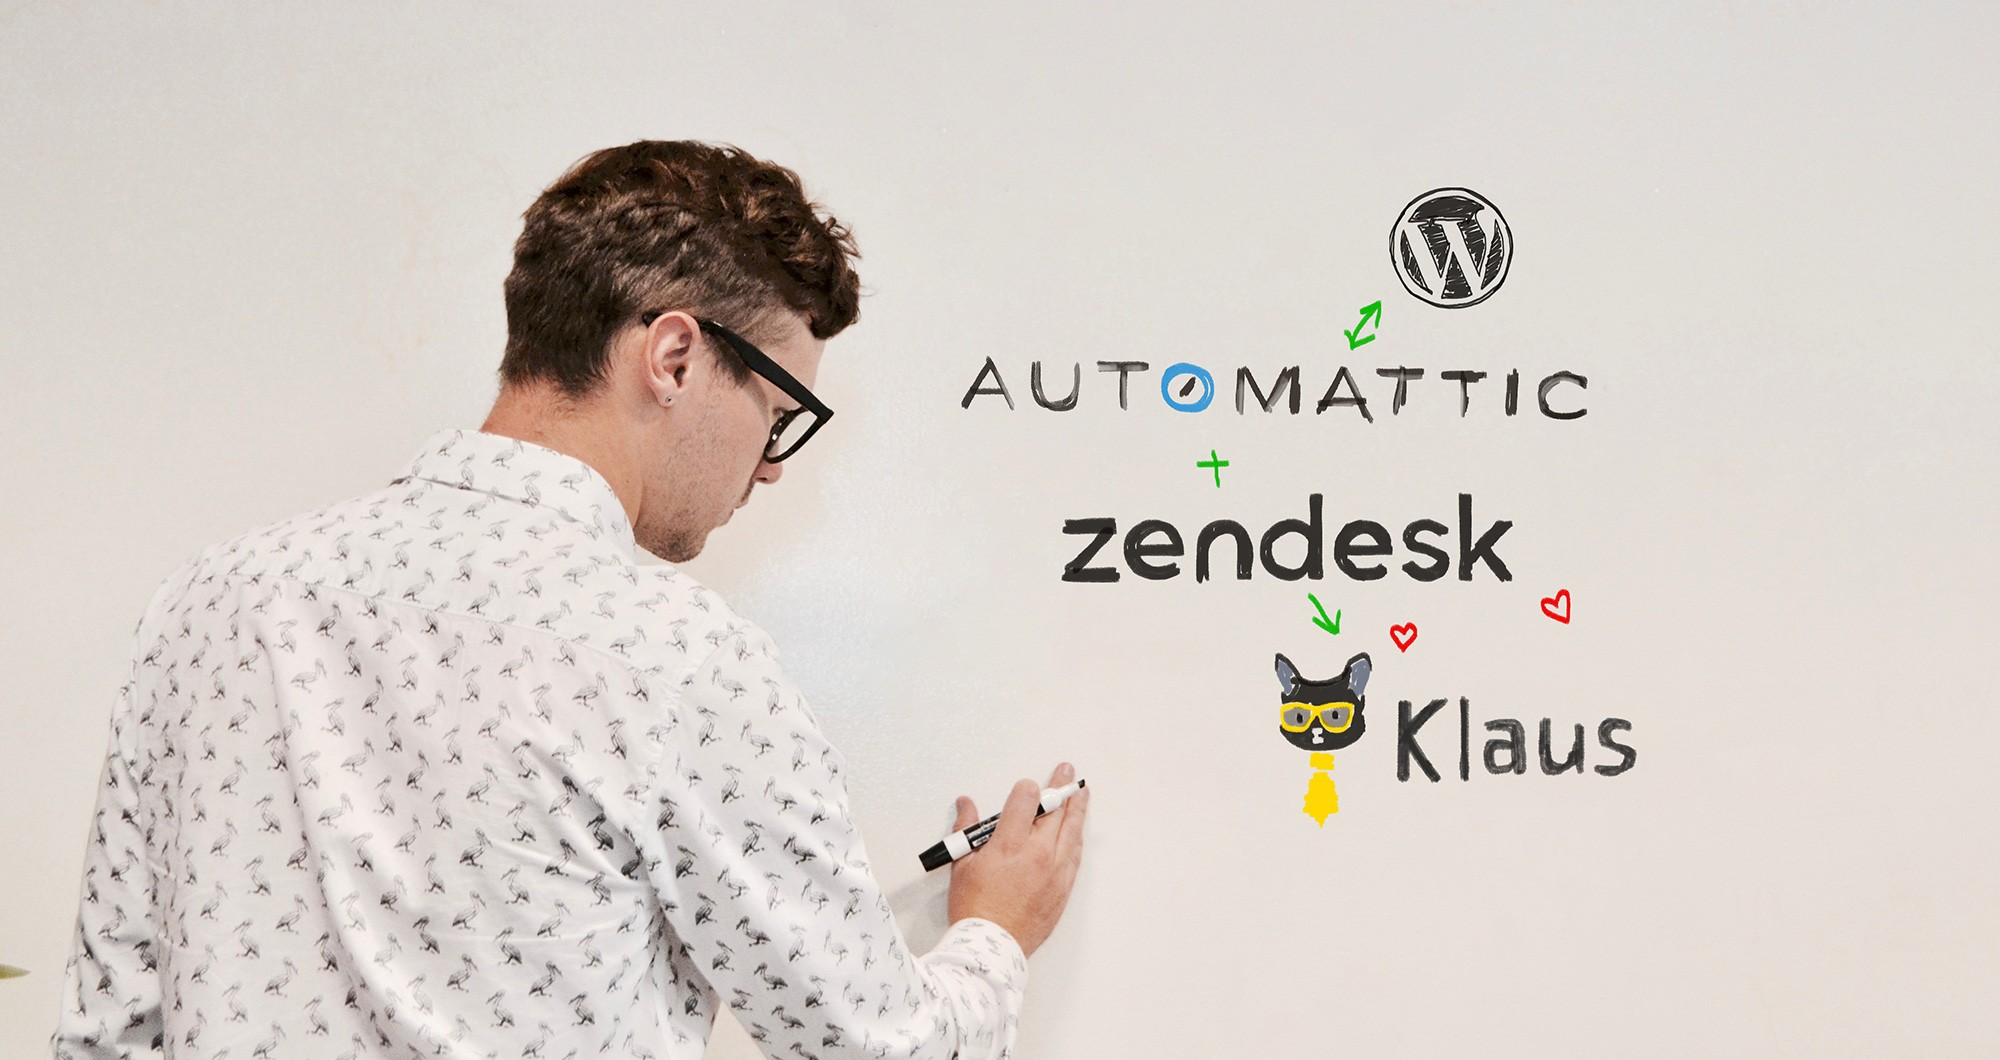 How Automattic Fosters Feedback with Klaus and Zendesk